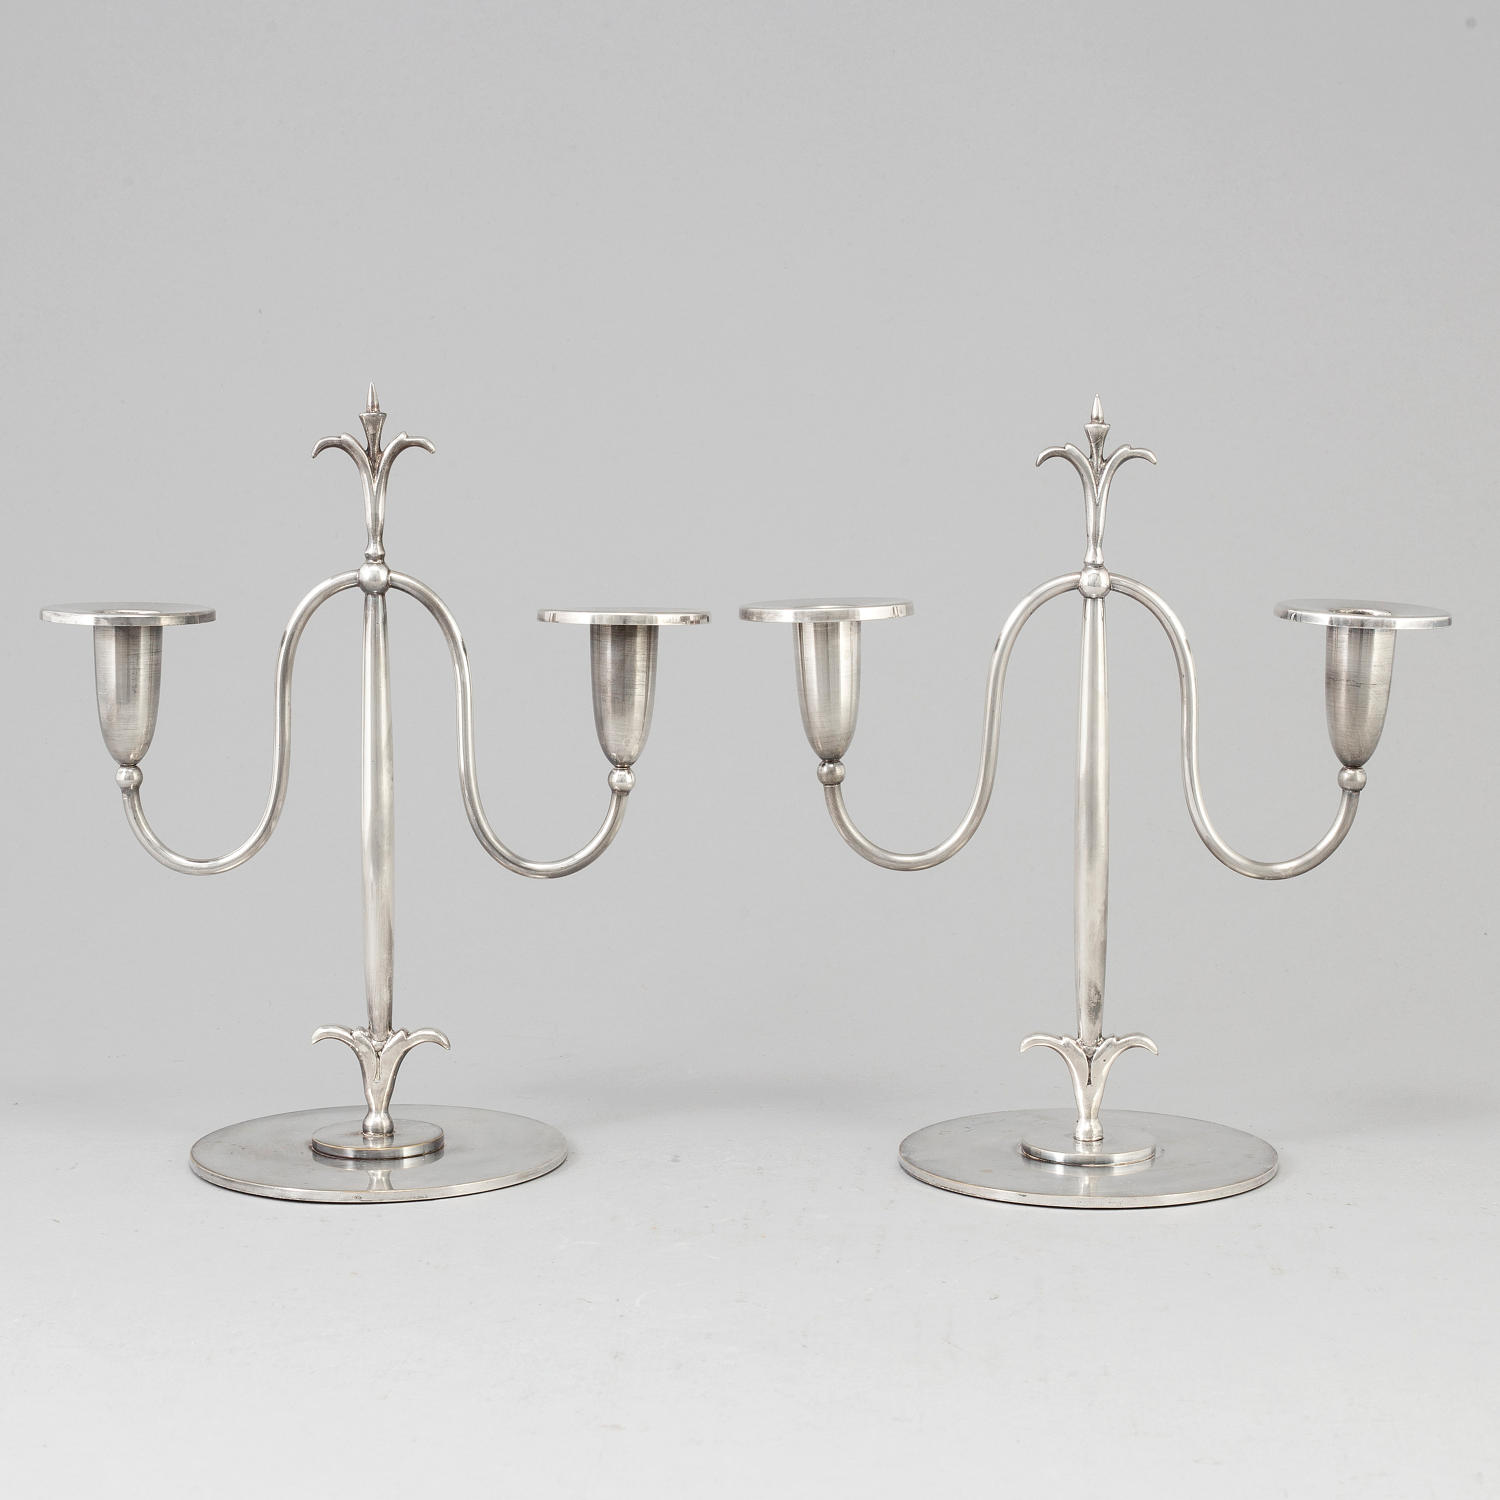 ELIS BERGH, a pair of silver plate candelabra